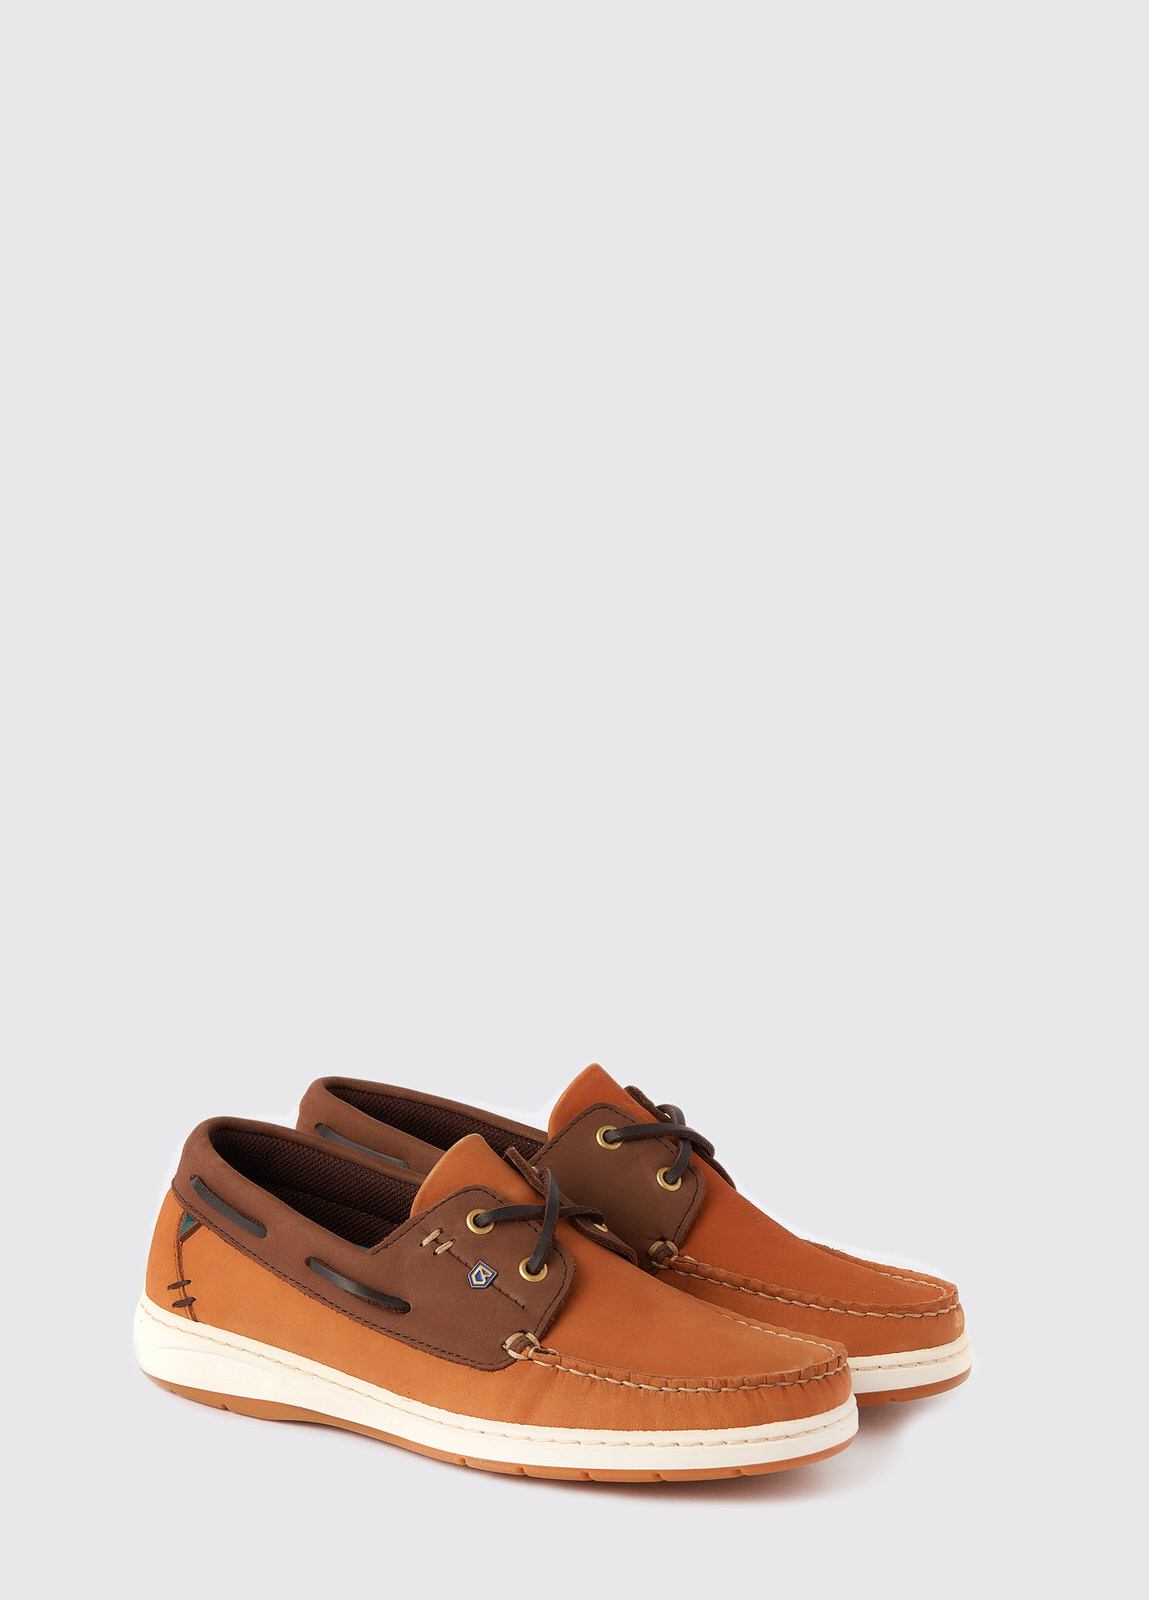 Florida Deck shoes - Café/Caramel